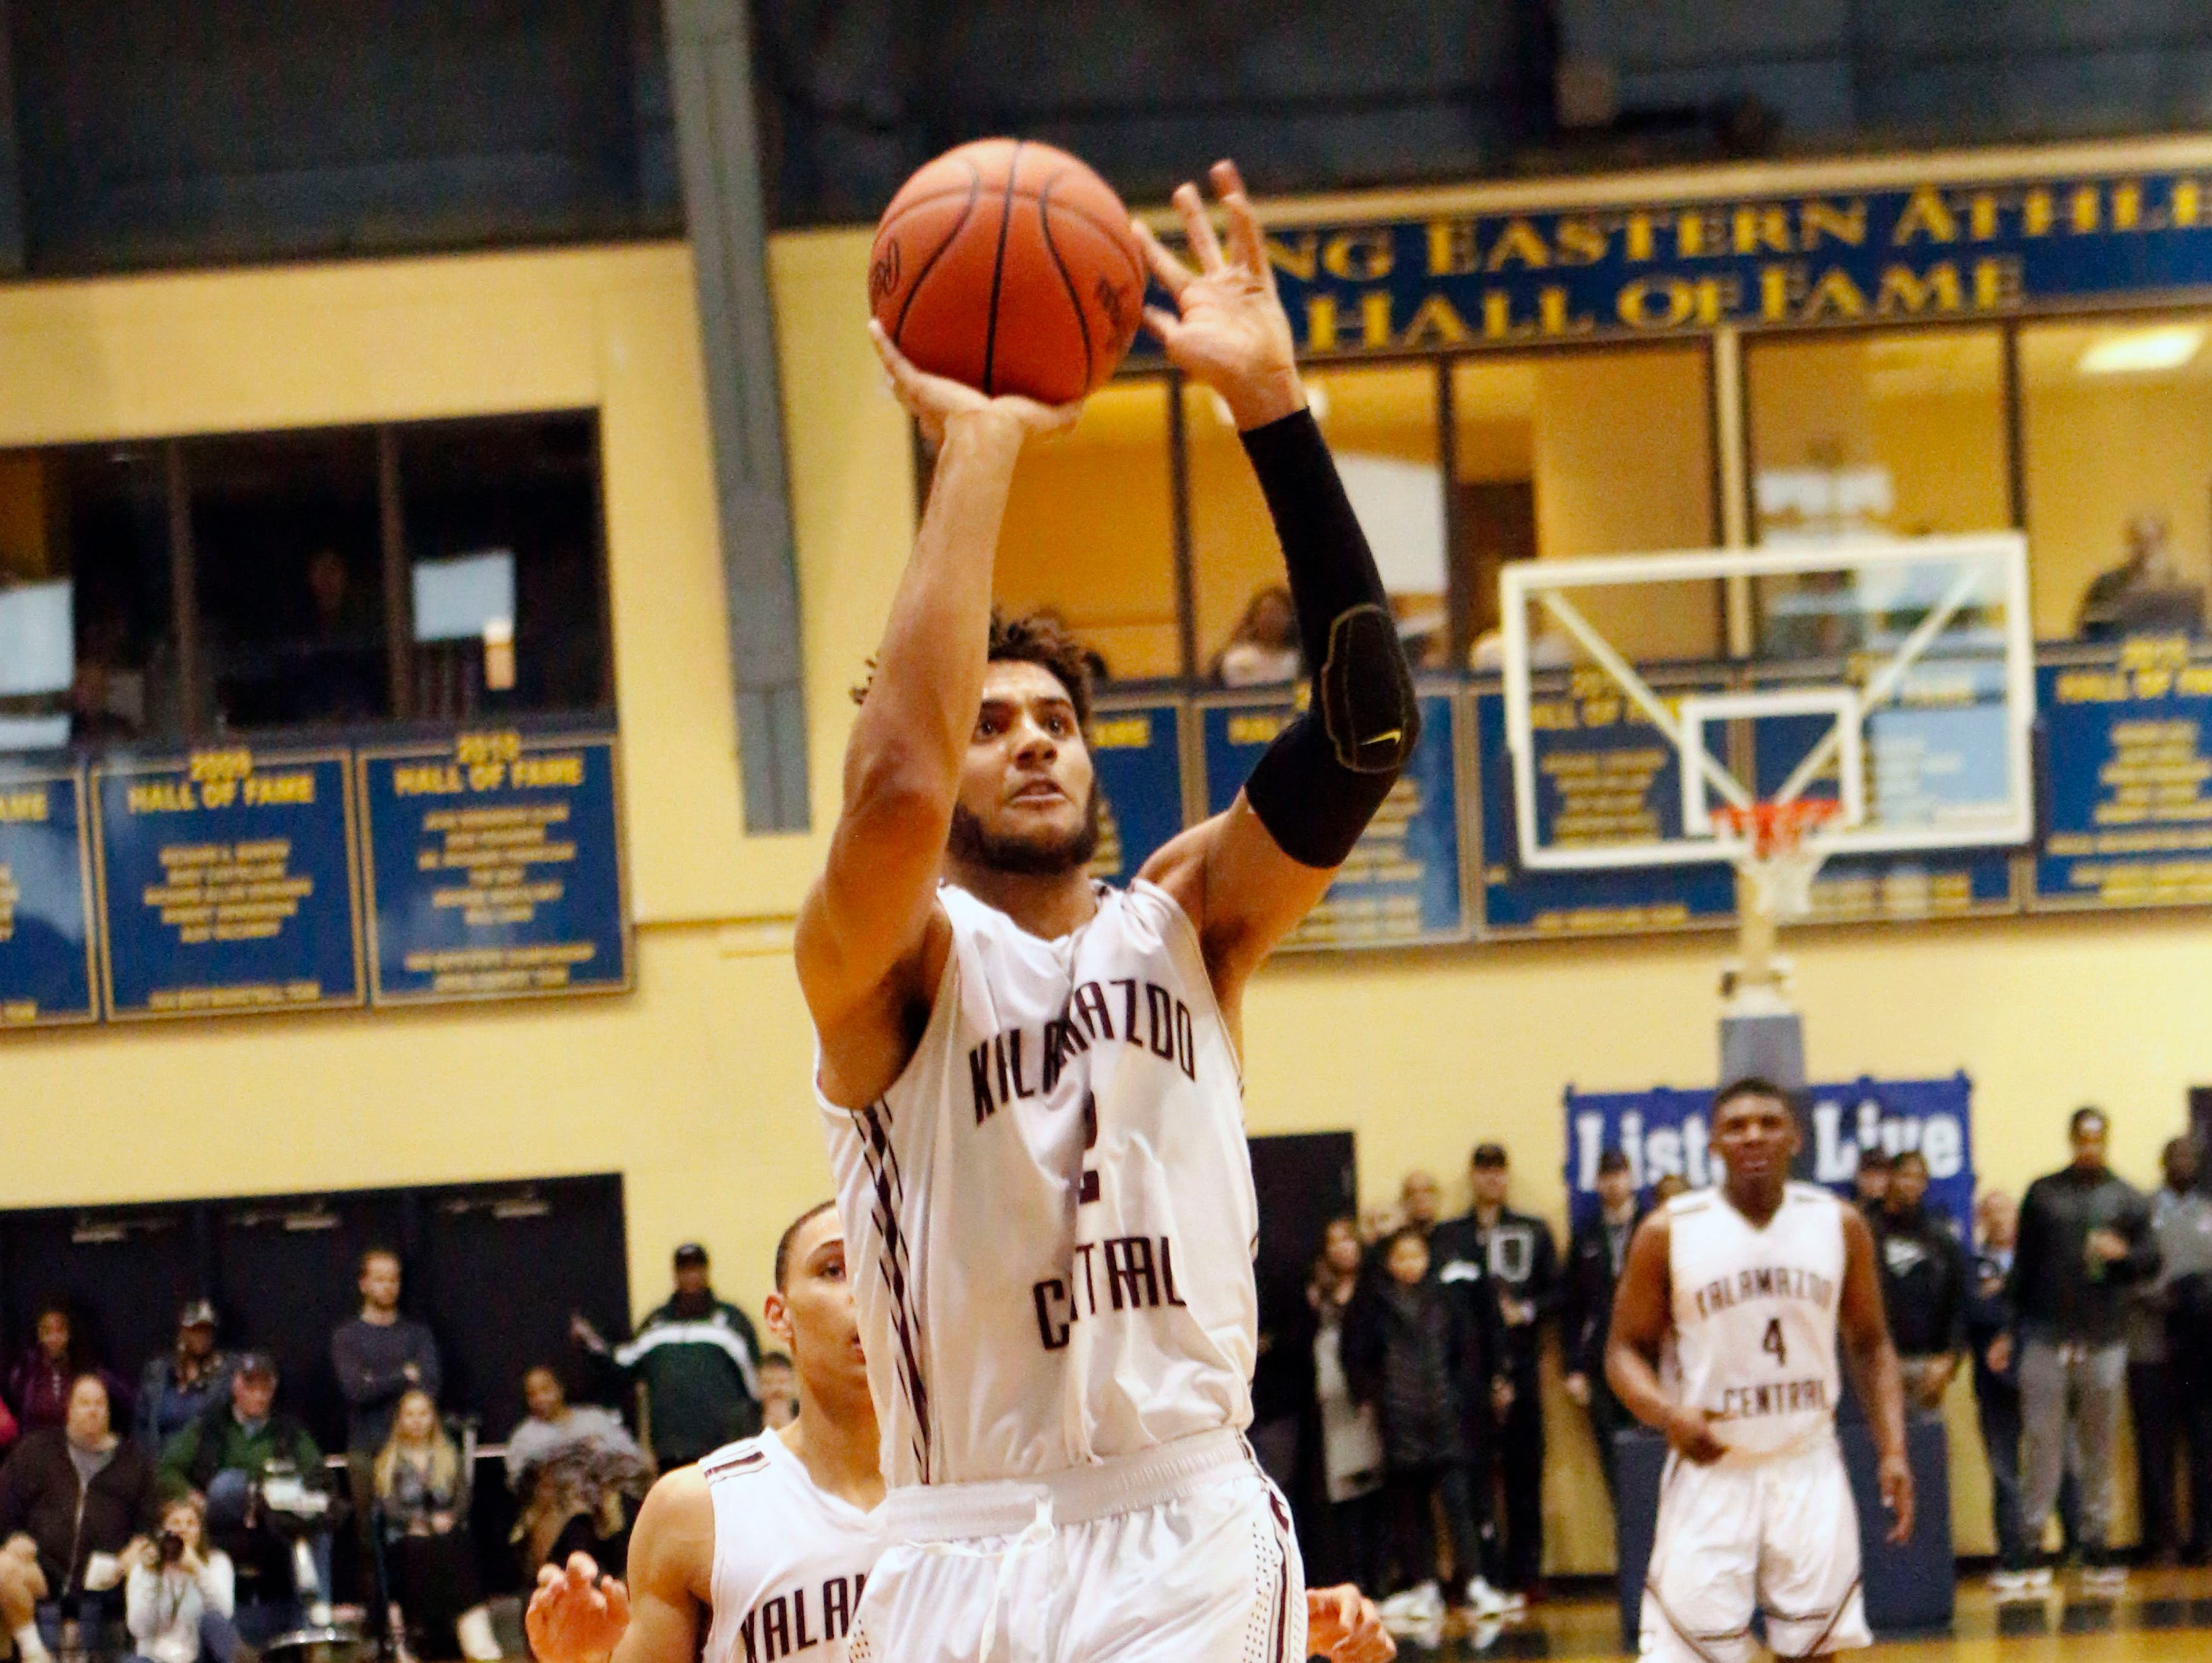 Kalamazoo Central's Isaiah Livers goes up for a shot against Grand Rapids Christian in Tuesday's Class A quarterfinal at Lansing Eastern.